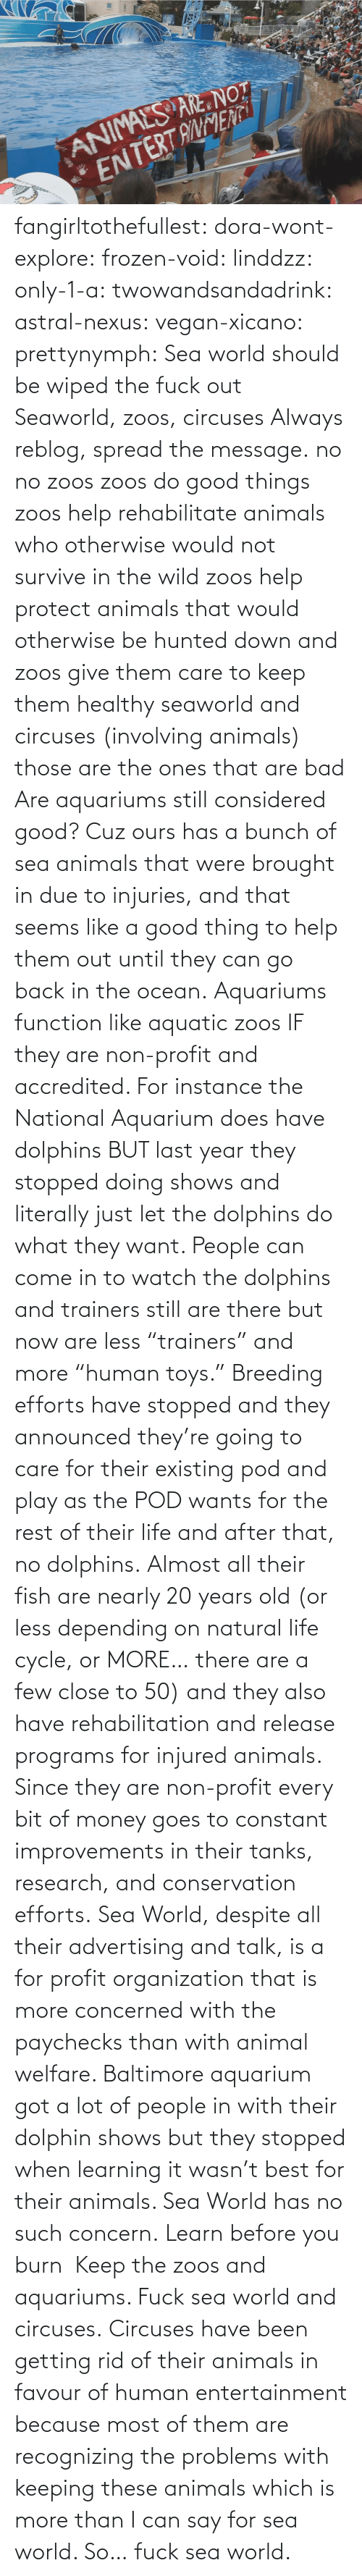 "Research: fangirltothefullest:  dora-wont-explore:  frozen-void:  linddzz:  only-1-a:  twowandsandadrink:  astral-nexus:  vegan-xicano:  prettynymph:  Sea world should be wiped the fuck out  Seaworld, zoos, circuses  Always reblog, spread the message.  no no zoos zoos do good things zoos help rehabilitate animals who otherwise would not survive in the wild zoos help protect animals that would otherwise be hunted down and zoos give them care to keep them healthy seaworld and circuses (involving animals) those are the ones that are bad  Are aquariums still considered good? Cuz ours has a bunch of sea animals that were brought in due to injuries, and that seems like a good thing to help them out until they can go back in the ocean.  Aquariums function like aquatic zoos IF they are non-profit and accredited. For instance the National Aquarium does have dolphins BUT last year they stopped doing shows and literally just let the dolphins do what they want. People can come in to watch the dolphins and trainers still are there but now are less ""trainers"" and more ""human toys."" Breeding efforts have stopped and they announced they're going to care for their existing pod and play as the POD wants for the rest of their life and after that, no dolphins. Almost all their fish are nearly 20 years old (or less depending on natural life cycle, or MORE… there are a few close to 50) and they also have rehabilitation and release programs for injured animals. Since they are non-profit every bit of money goes to constant improvements in their tanks, research, and conservation efforts. Sea World, despite all their advertising and talk, is a for profit organization that is more concerned with the paychecks than with animal welfare. Baltimore aquarium got a lot of people in with their dolphin shows but they stopped when learning it wasn't best for their animals. Sea World has no such concern.  Learn before you burn   Keep the zoos and aquariums. Fuck sea world and circuses.  Circuses have been getting rid of  their animals in favour of human entertainment because most of them are recognizing the problems with keeping these animals which is more than I can say for sea world. So… fuck sea world."